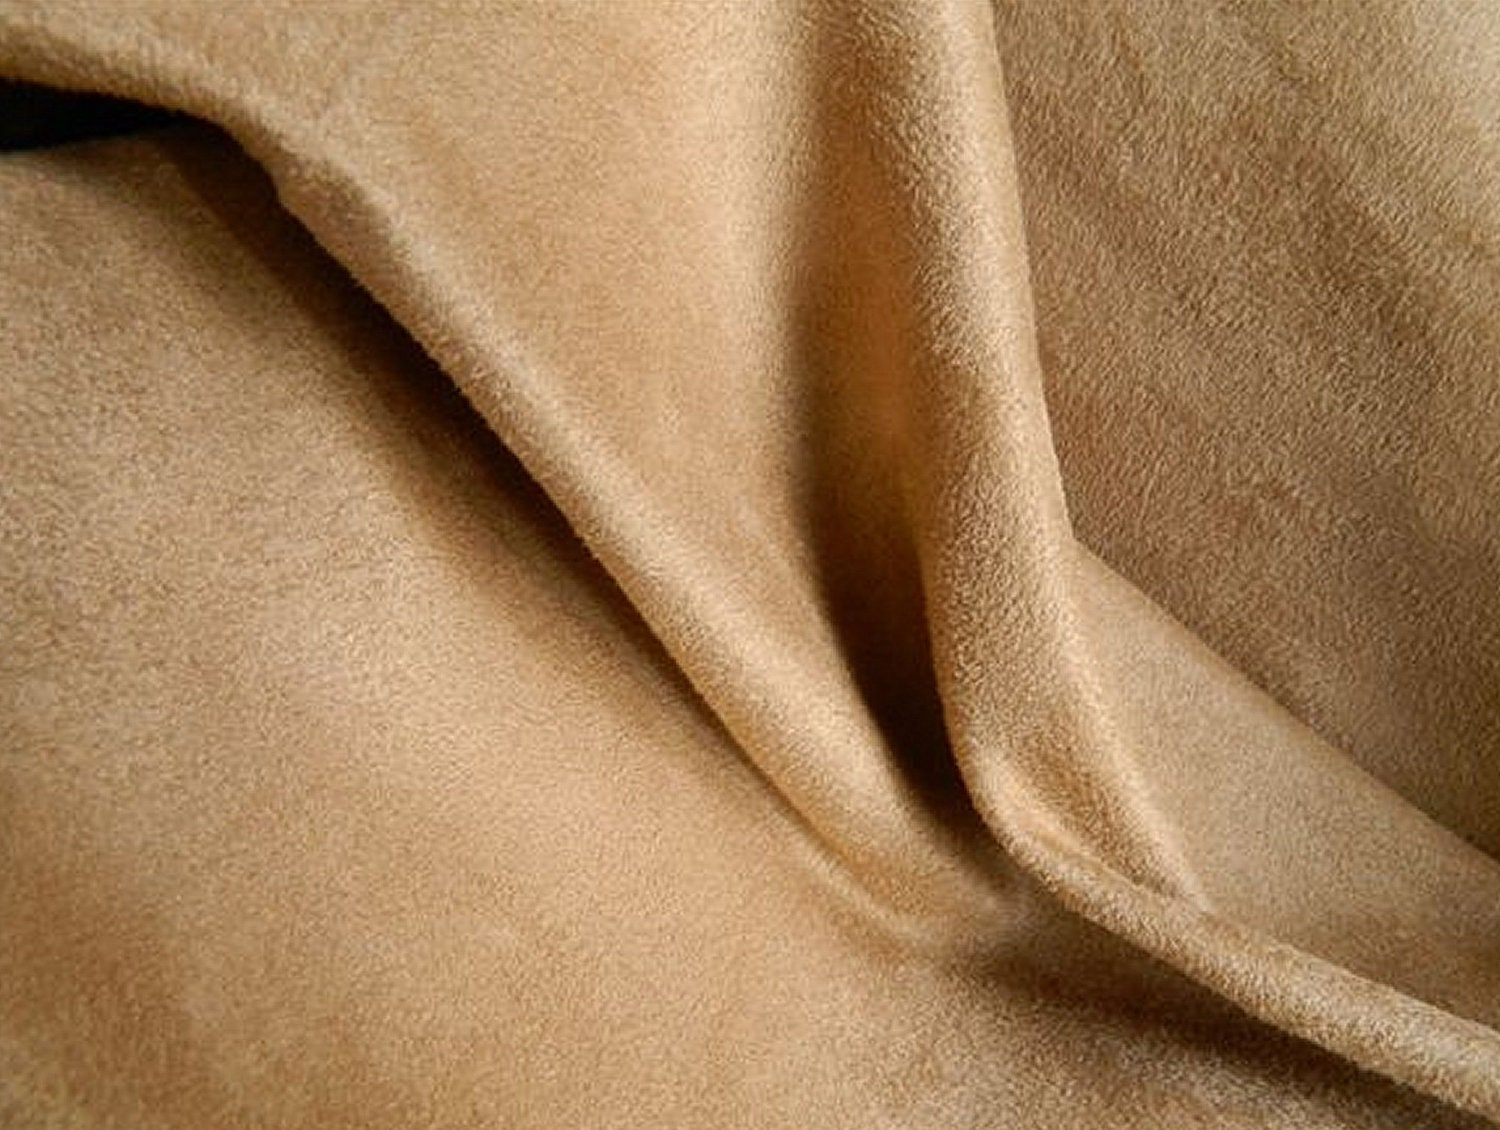 Suede Upholstery Fabric >> SOFT Washable Microfiber Ultrasuede Fabric CAMEL Slipcovers